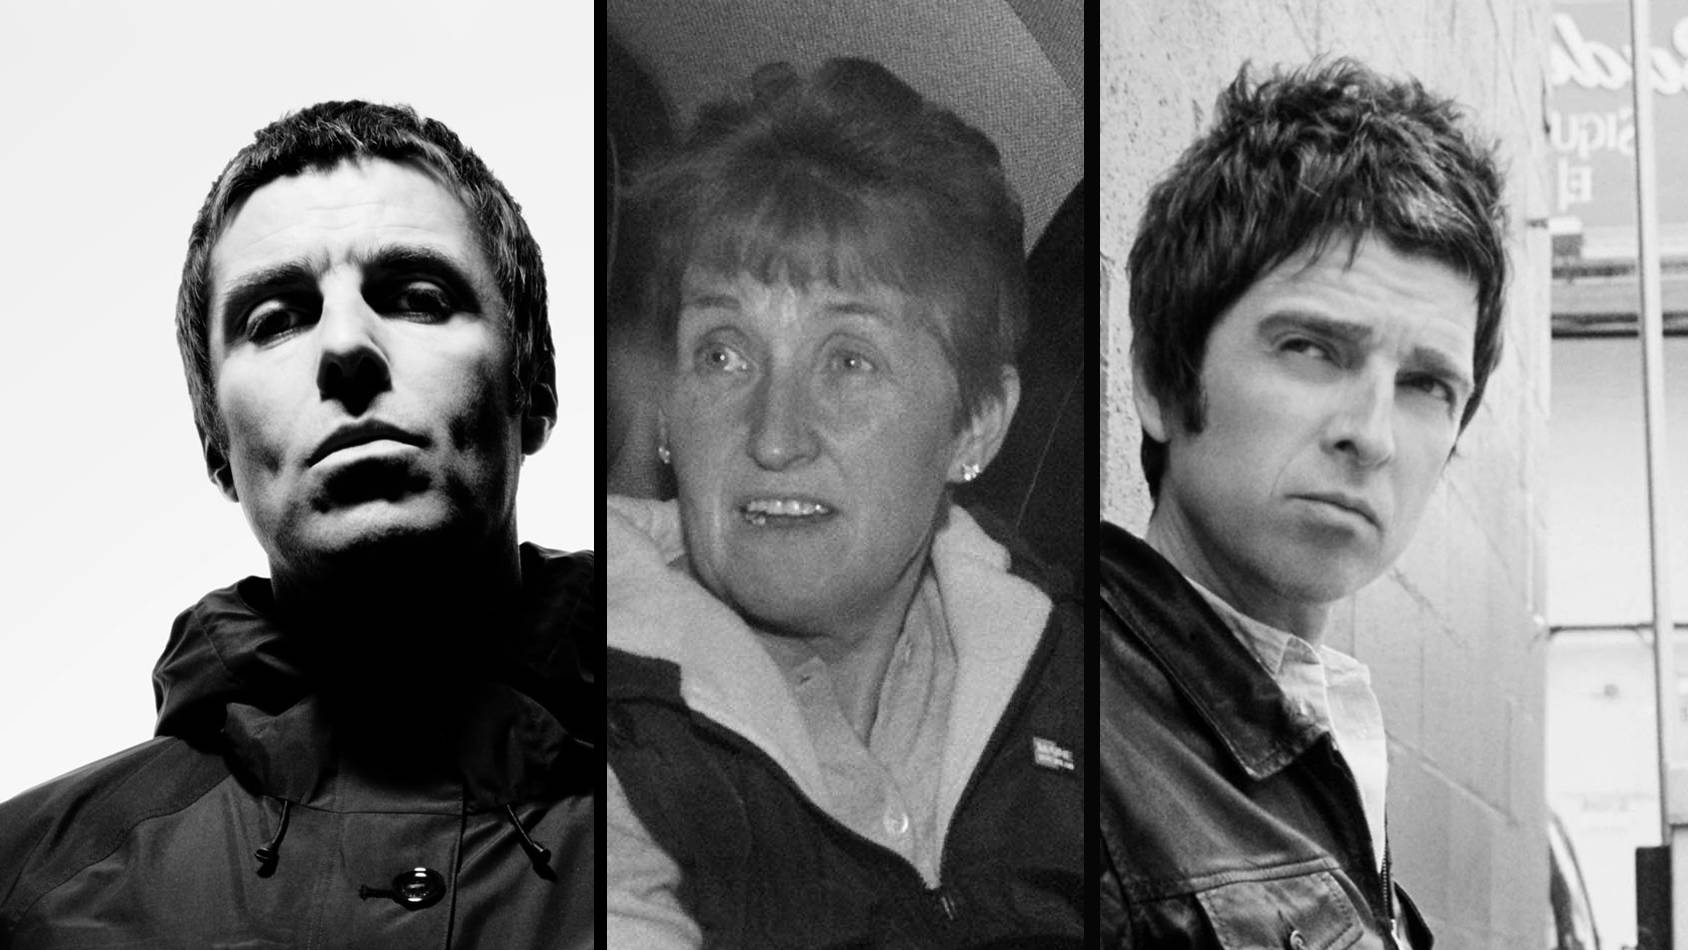 Liam Gallagher on Noel feud: There'll be war if we don't make up before our mum dies